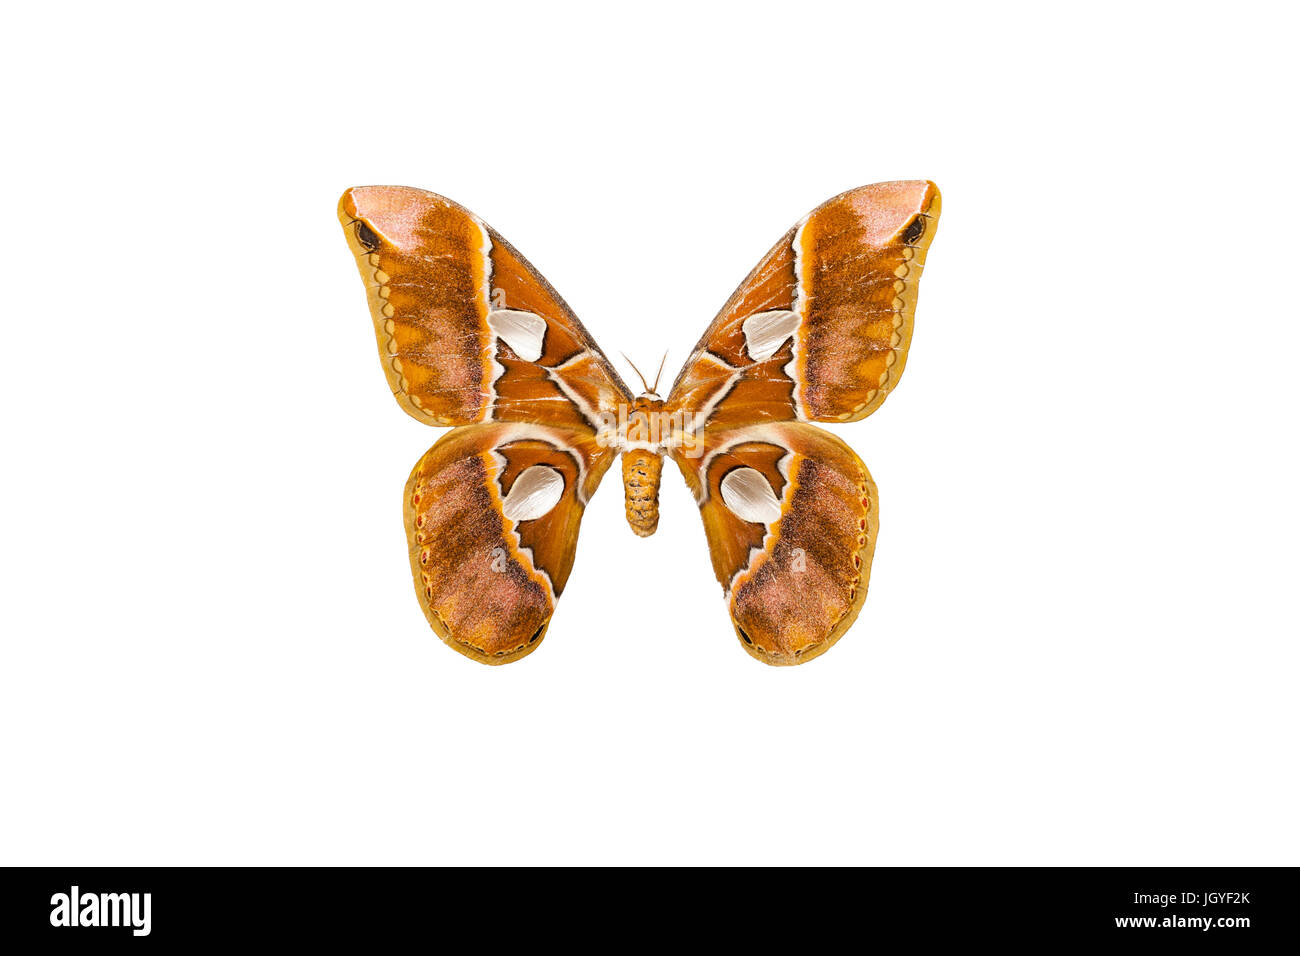 Rothschidlia moths are among the largest Lepidopterans in the world. - Stock Image